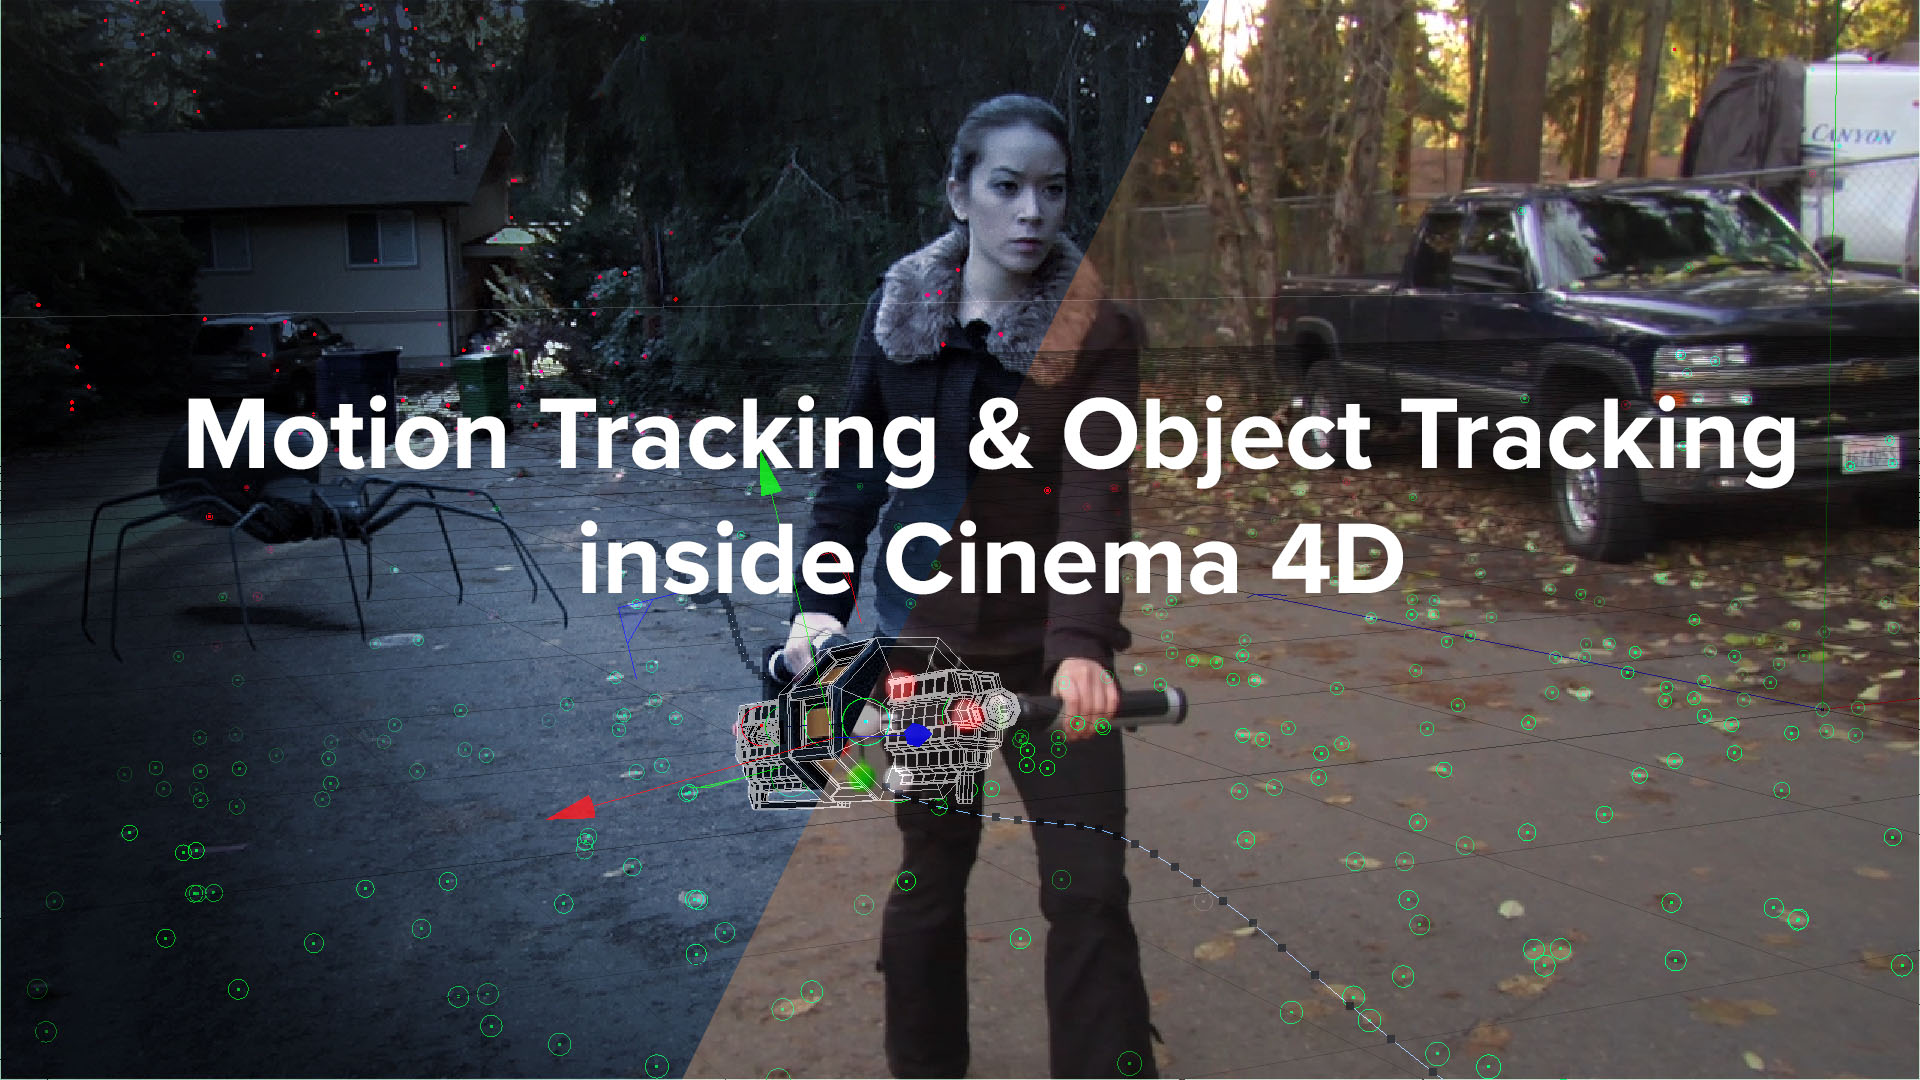 Motion Tracking & Object Tracking inside Cinema 4D